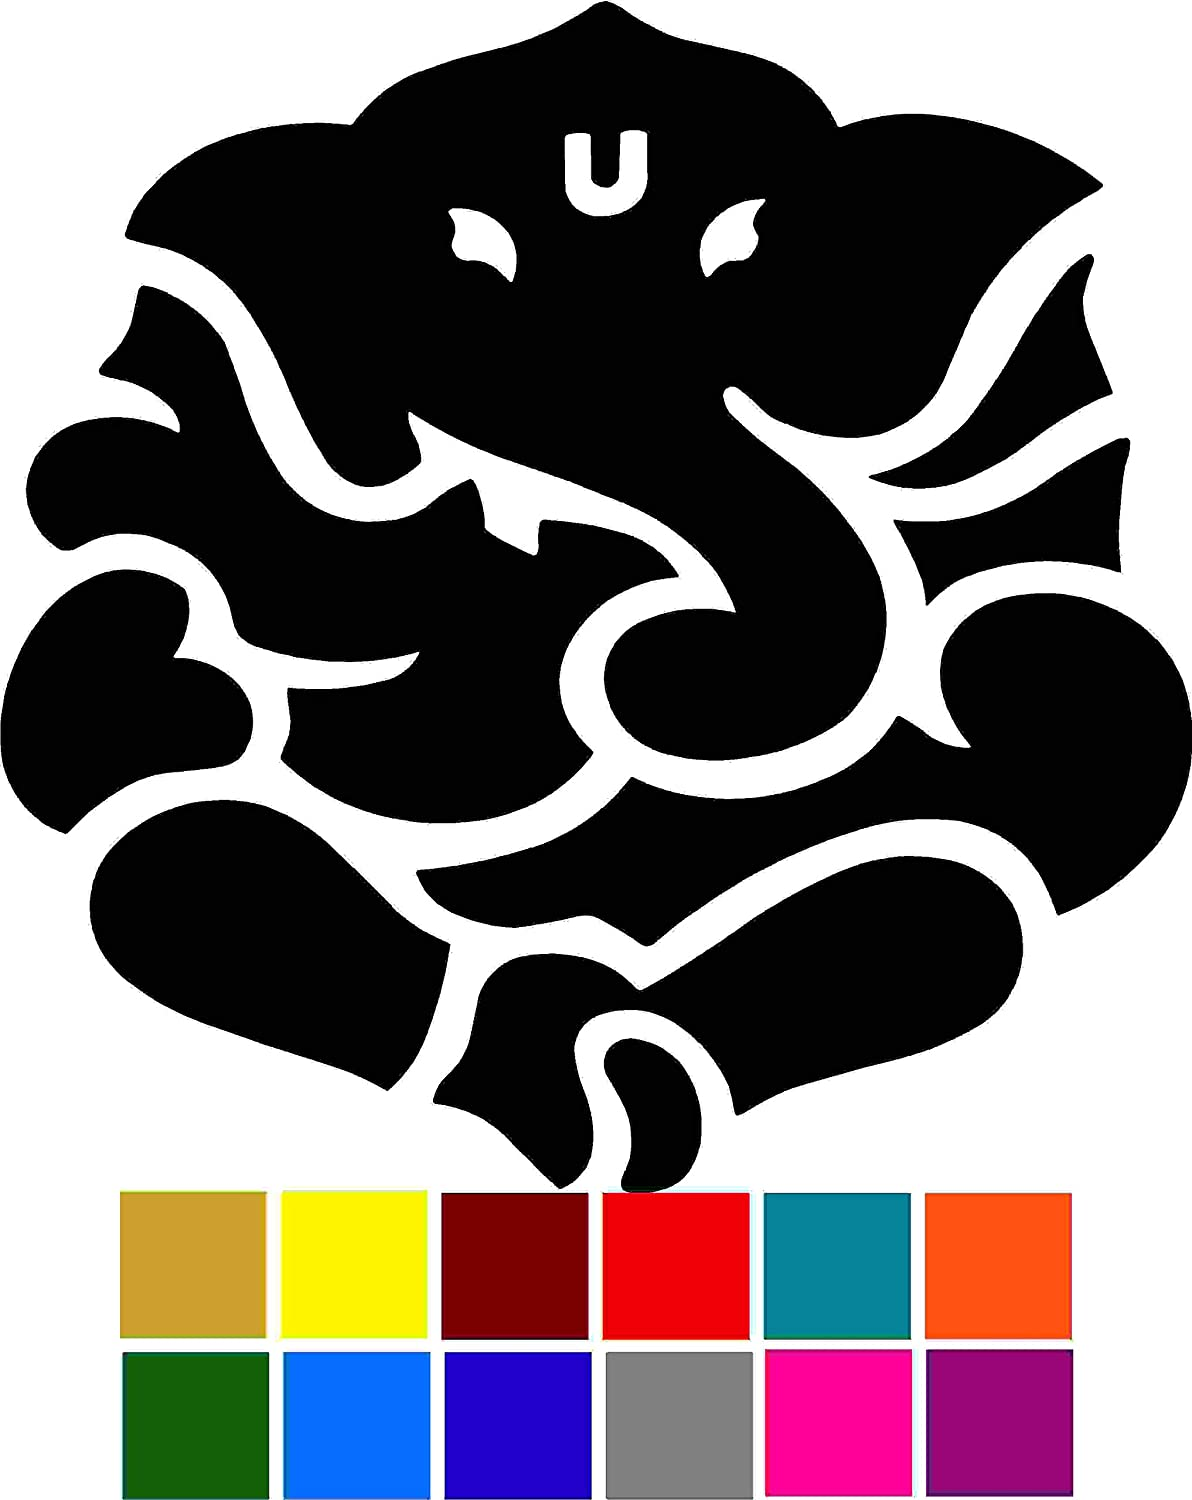 Ganesh Yoga Hindu Elephant Car Window Tumblers Wall Decal Sticker Vinyl Laptops Cellphones Phones Tablets Ipads Helmets Motorcycles Computer Towers V and T Gifts